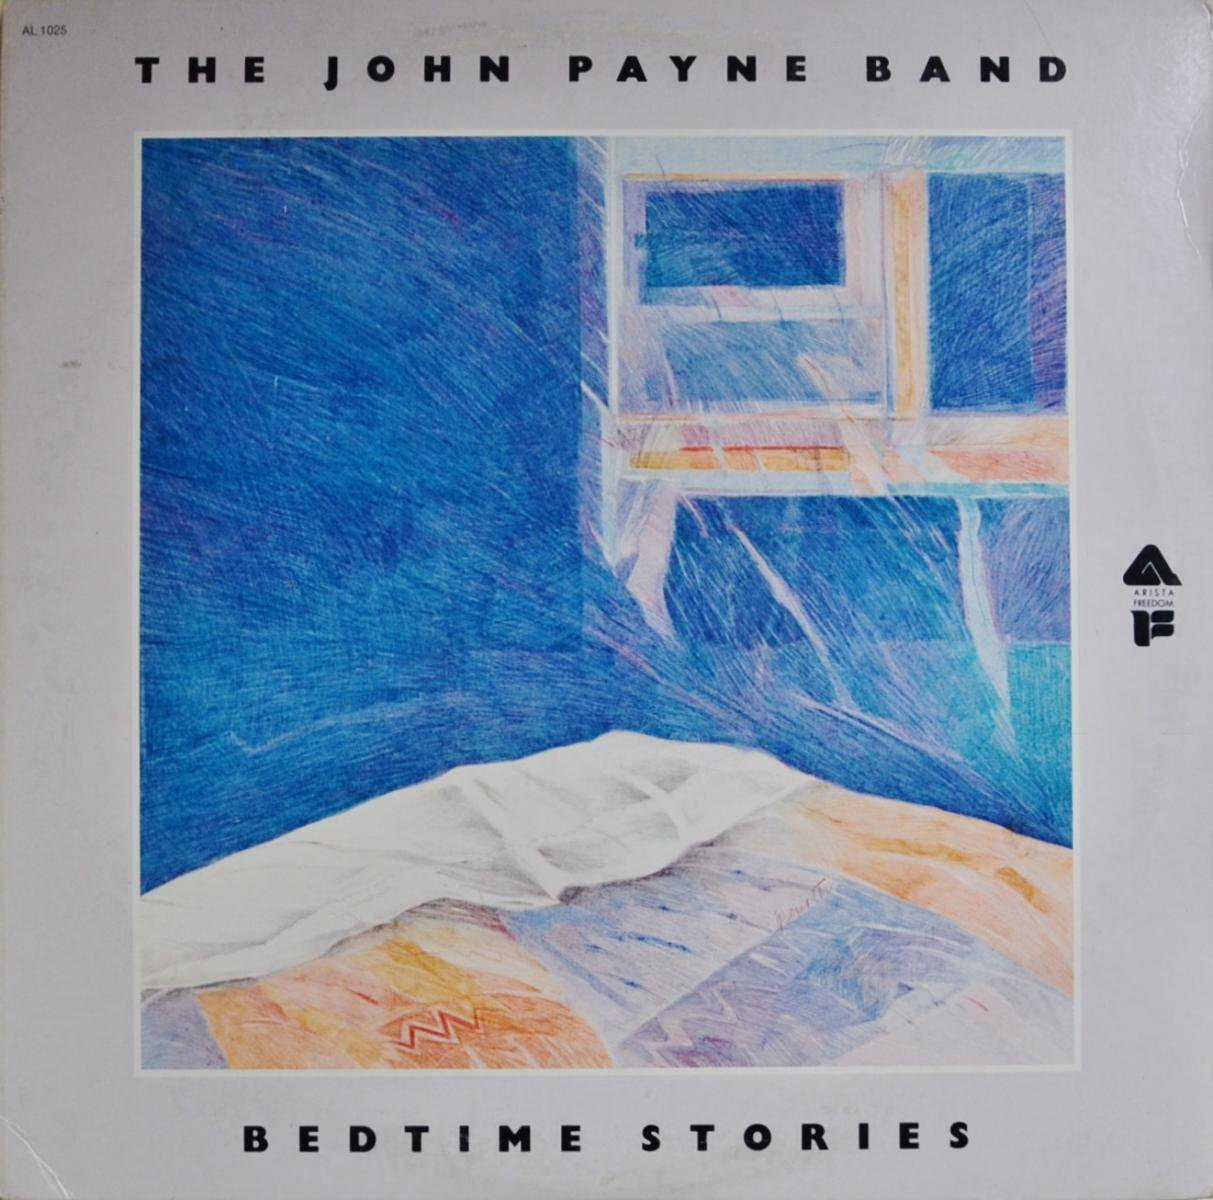 THE JOHN PAYNE BAND / BEDTIME STORIES (LP)